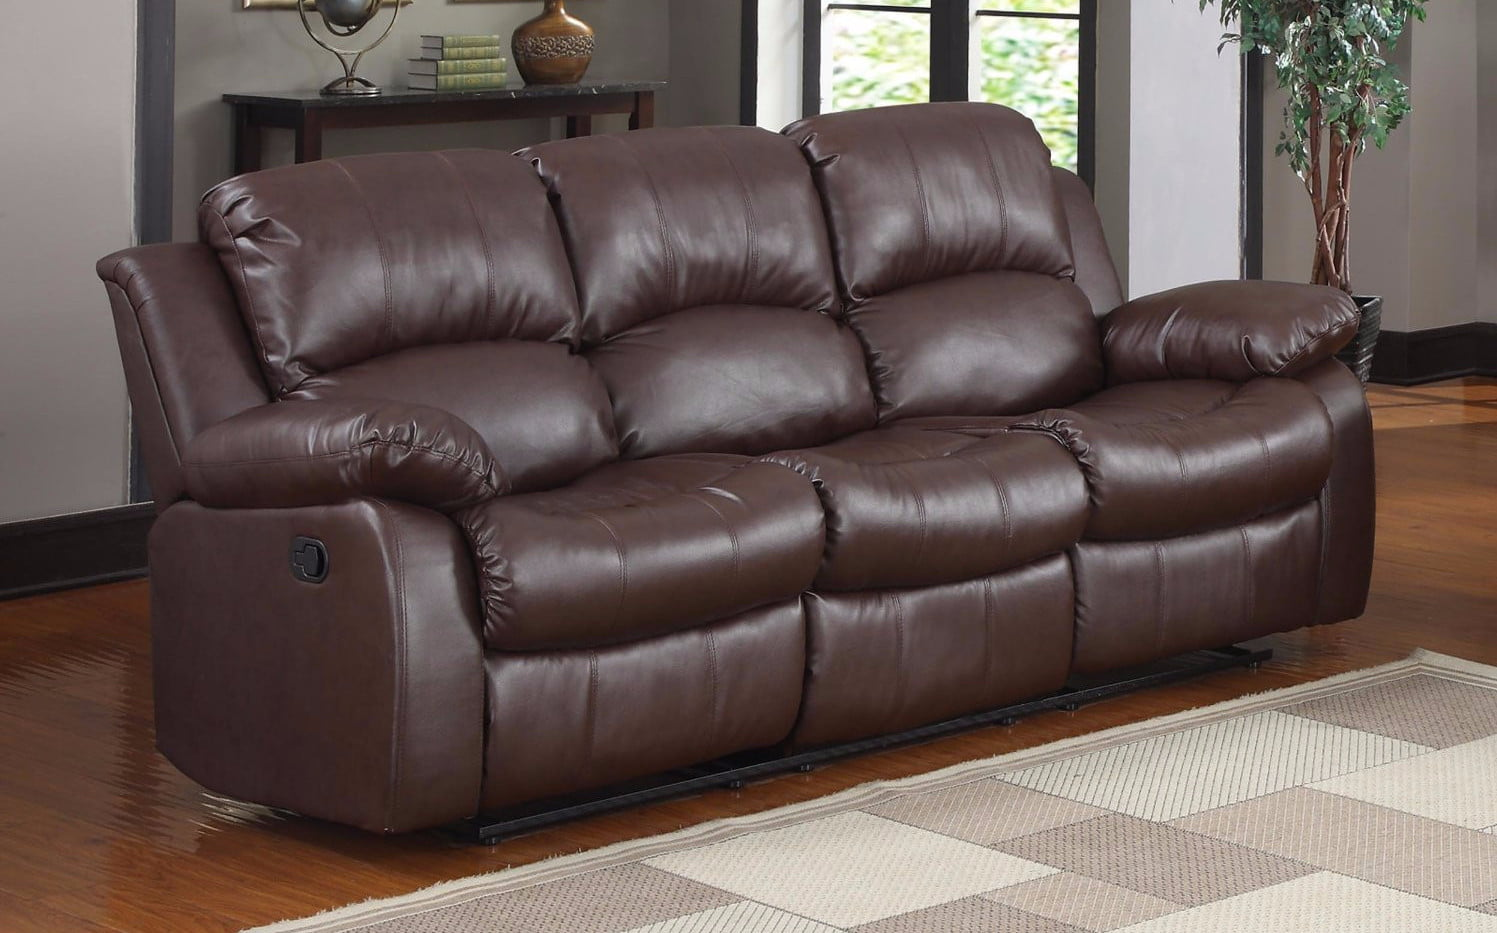 Details about Brown Double Reclining 3 Seat Sofa Bonded Leather Living Room  Recliner Furniture